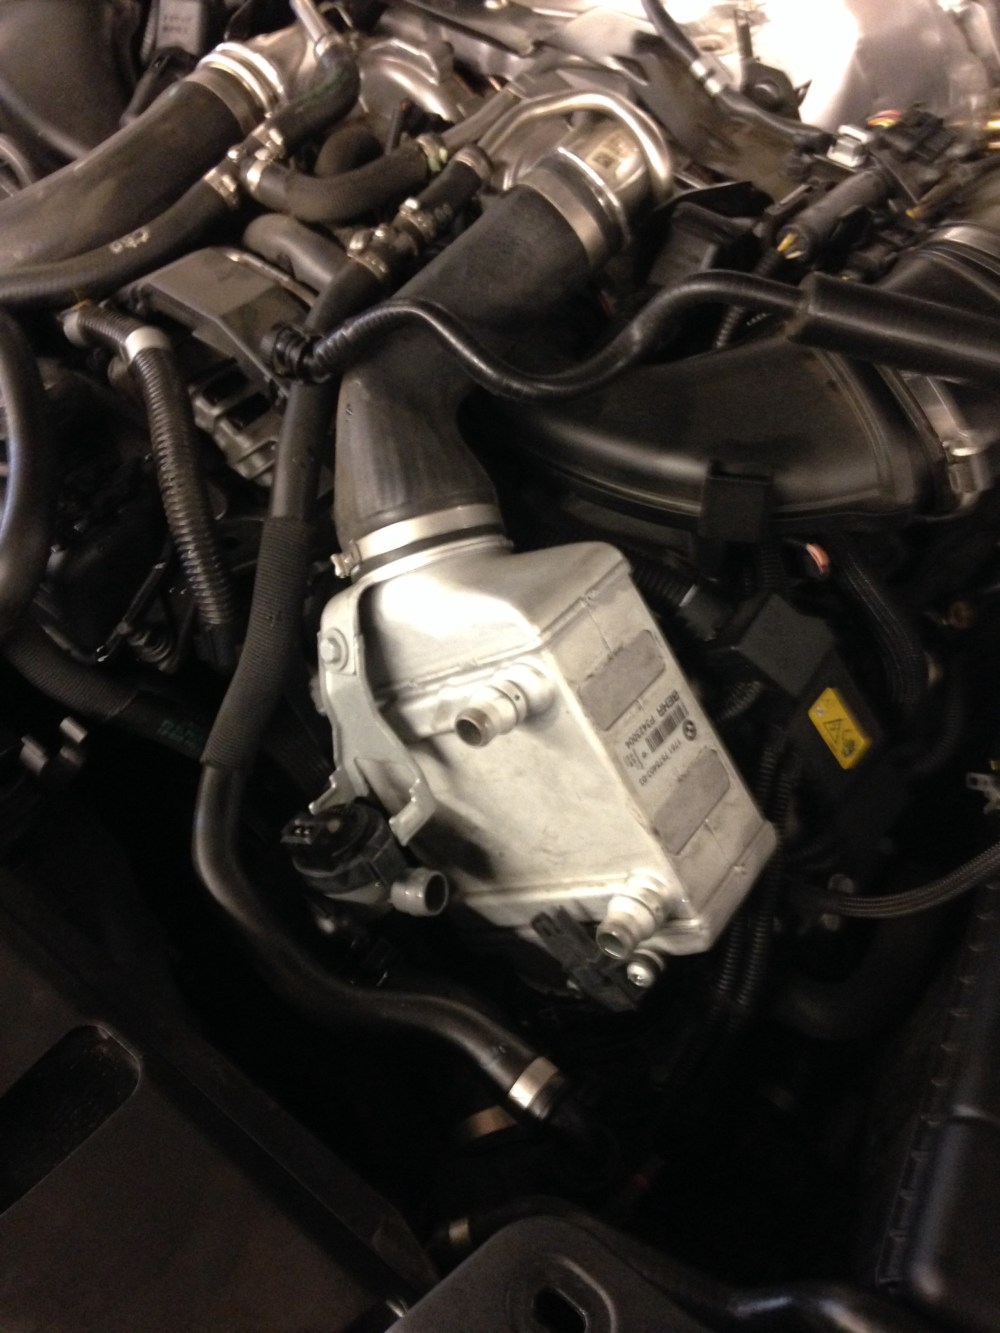 medium resolution of this n63 came in with check engine light on the fault was bank 2 intake vanos during cold start so the vanos unit wasn t working properly during cold